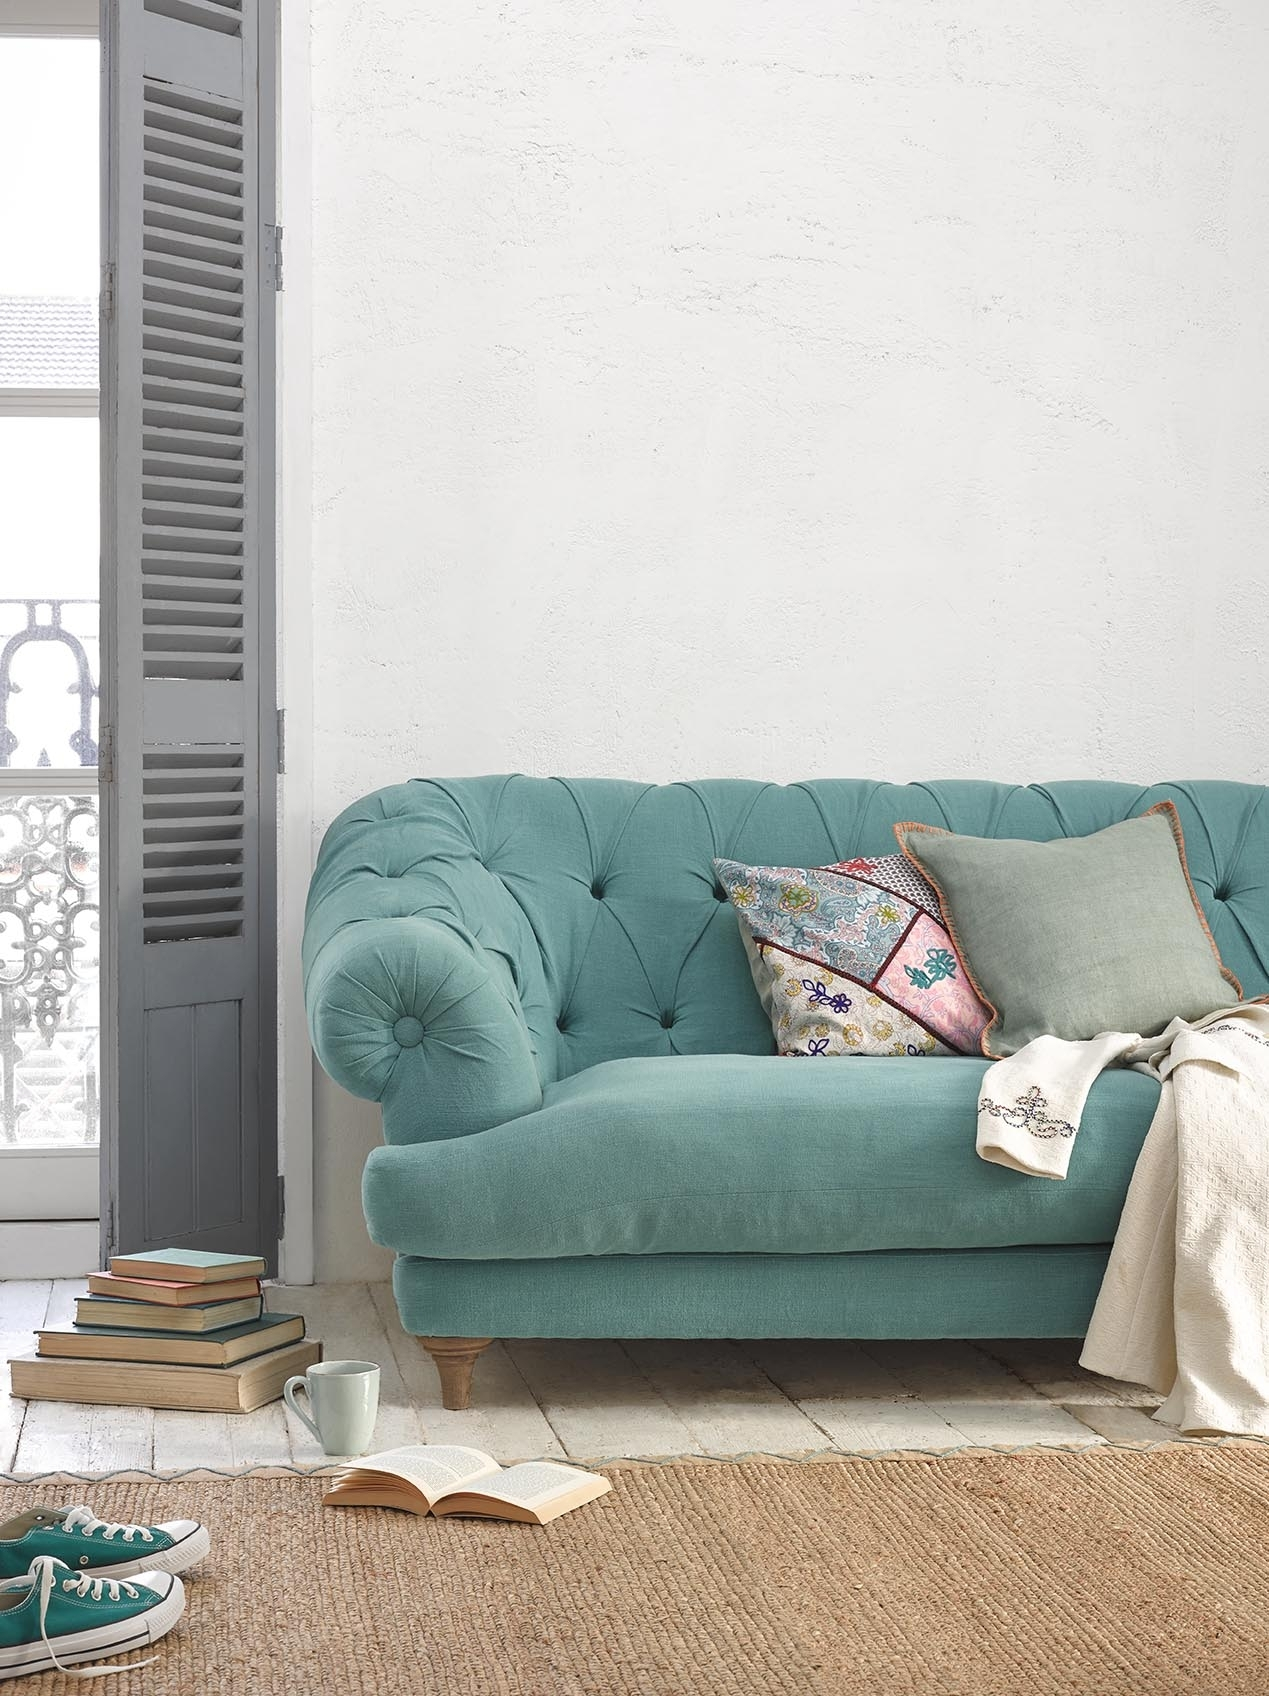 Bagsie Sofa | Chesterfield Style Sofa | Loaf Within Aqua Sofas (View 2 of 10)